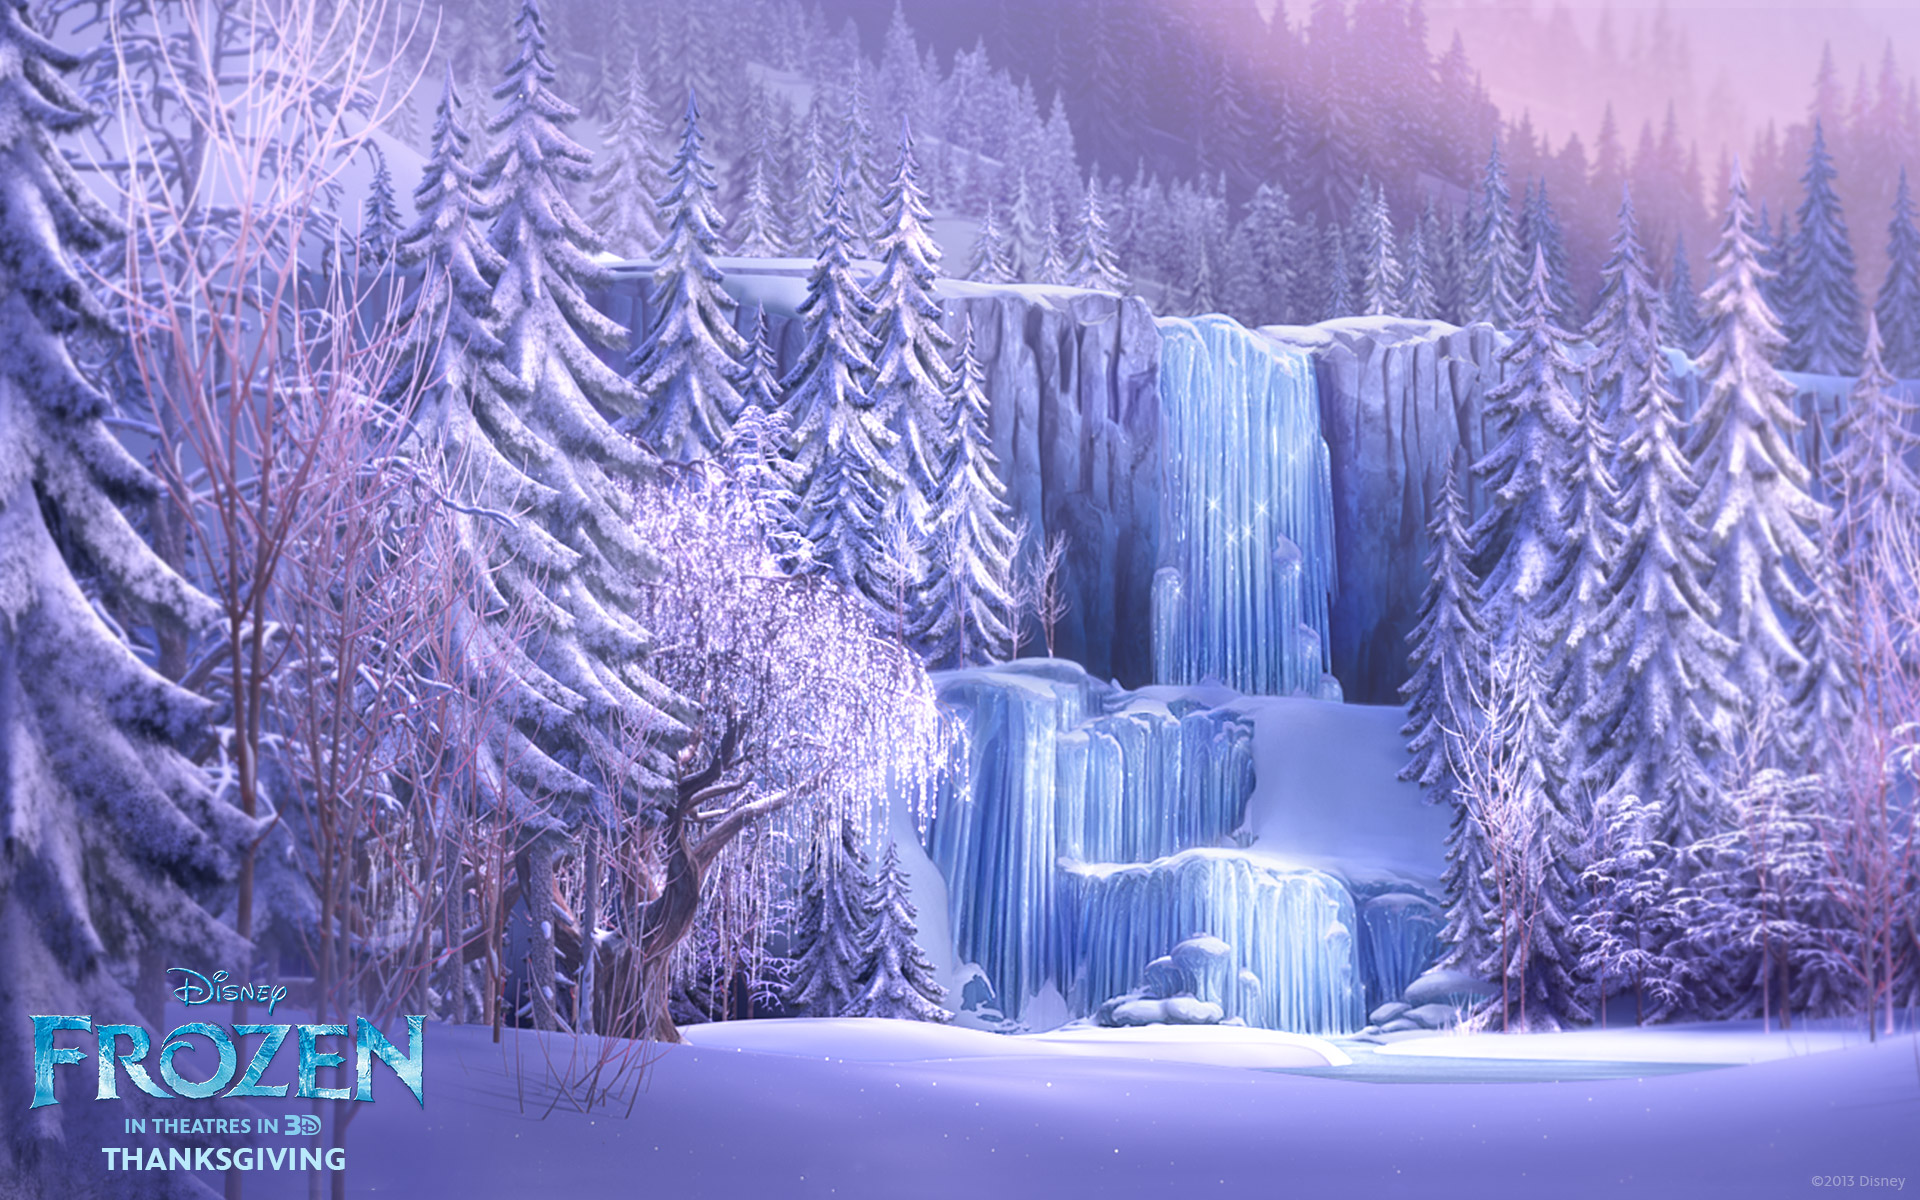 Olaf Frozen Ipad Wallpaper Frozen waterfall from disneys 1920x1200